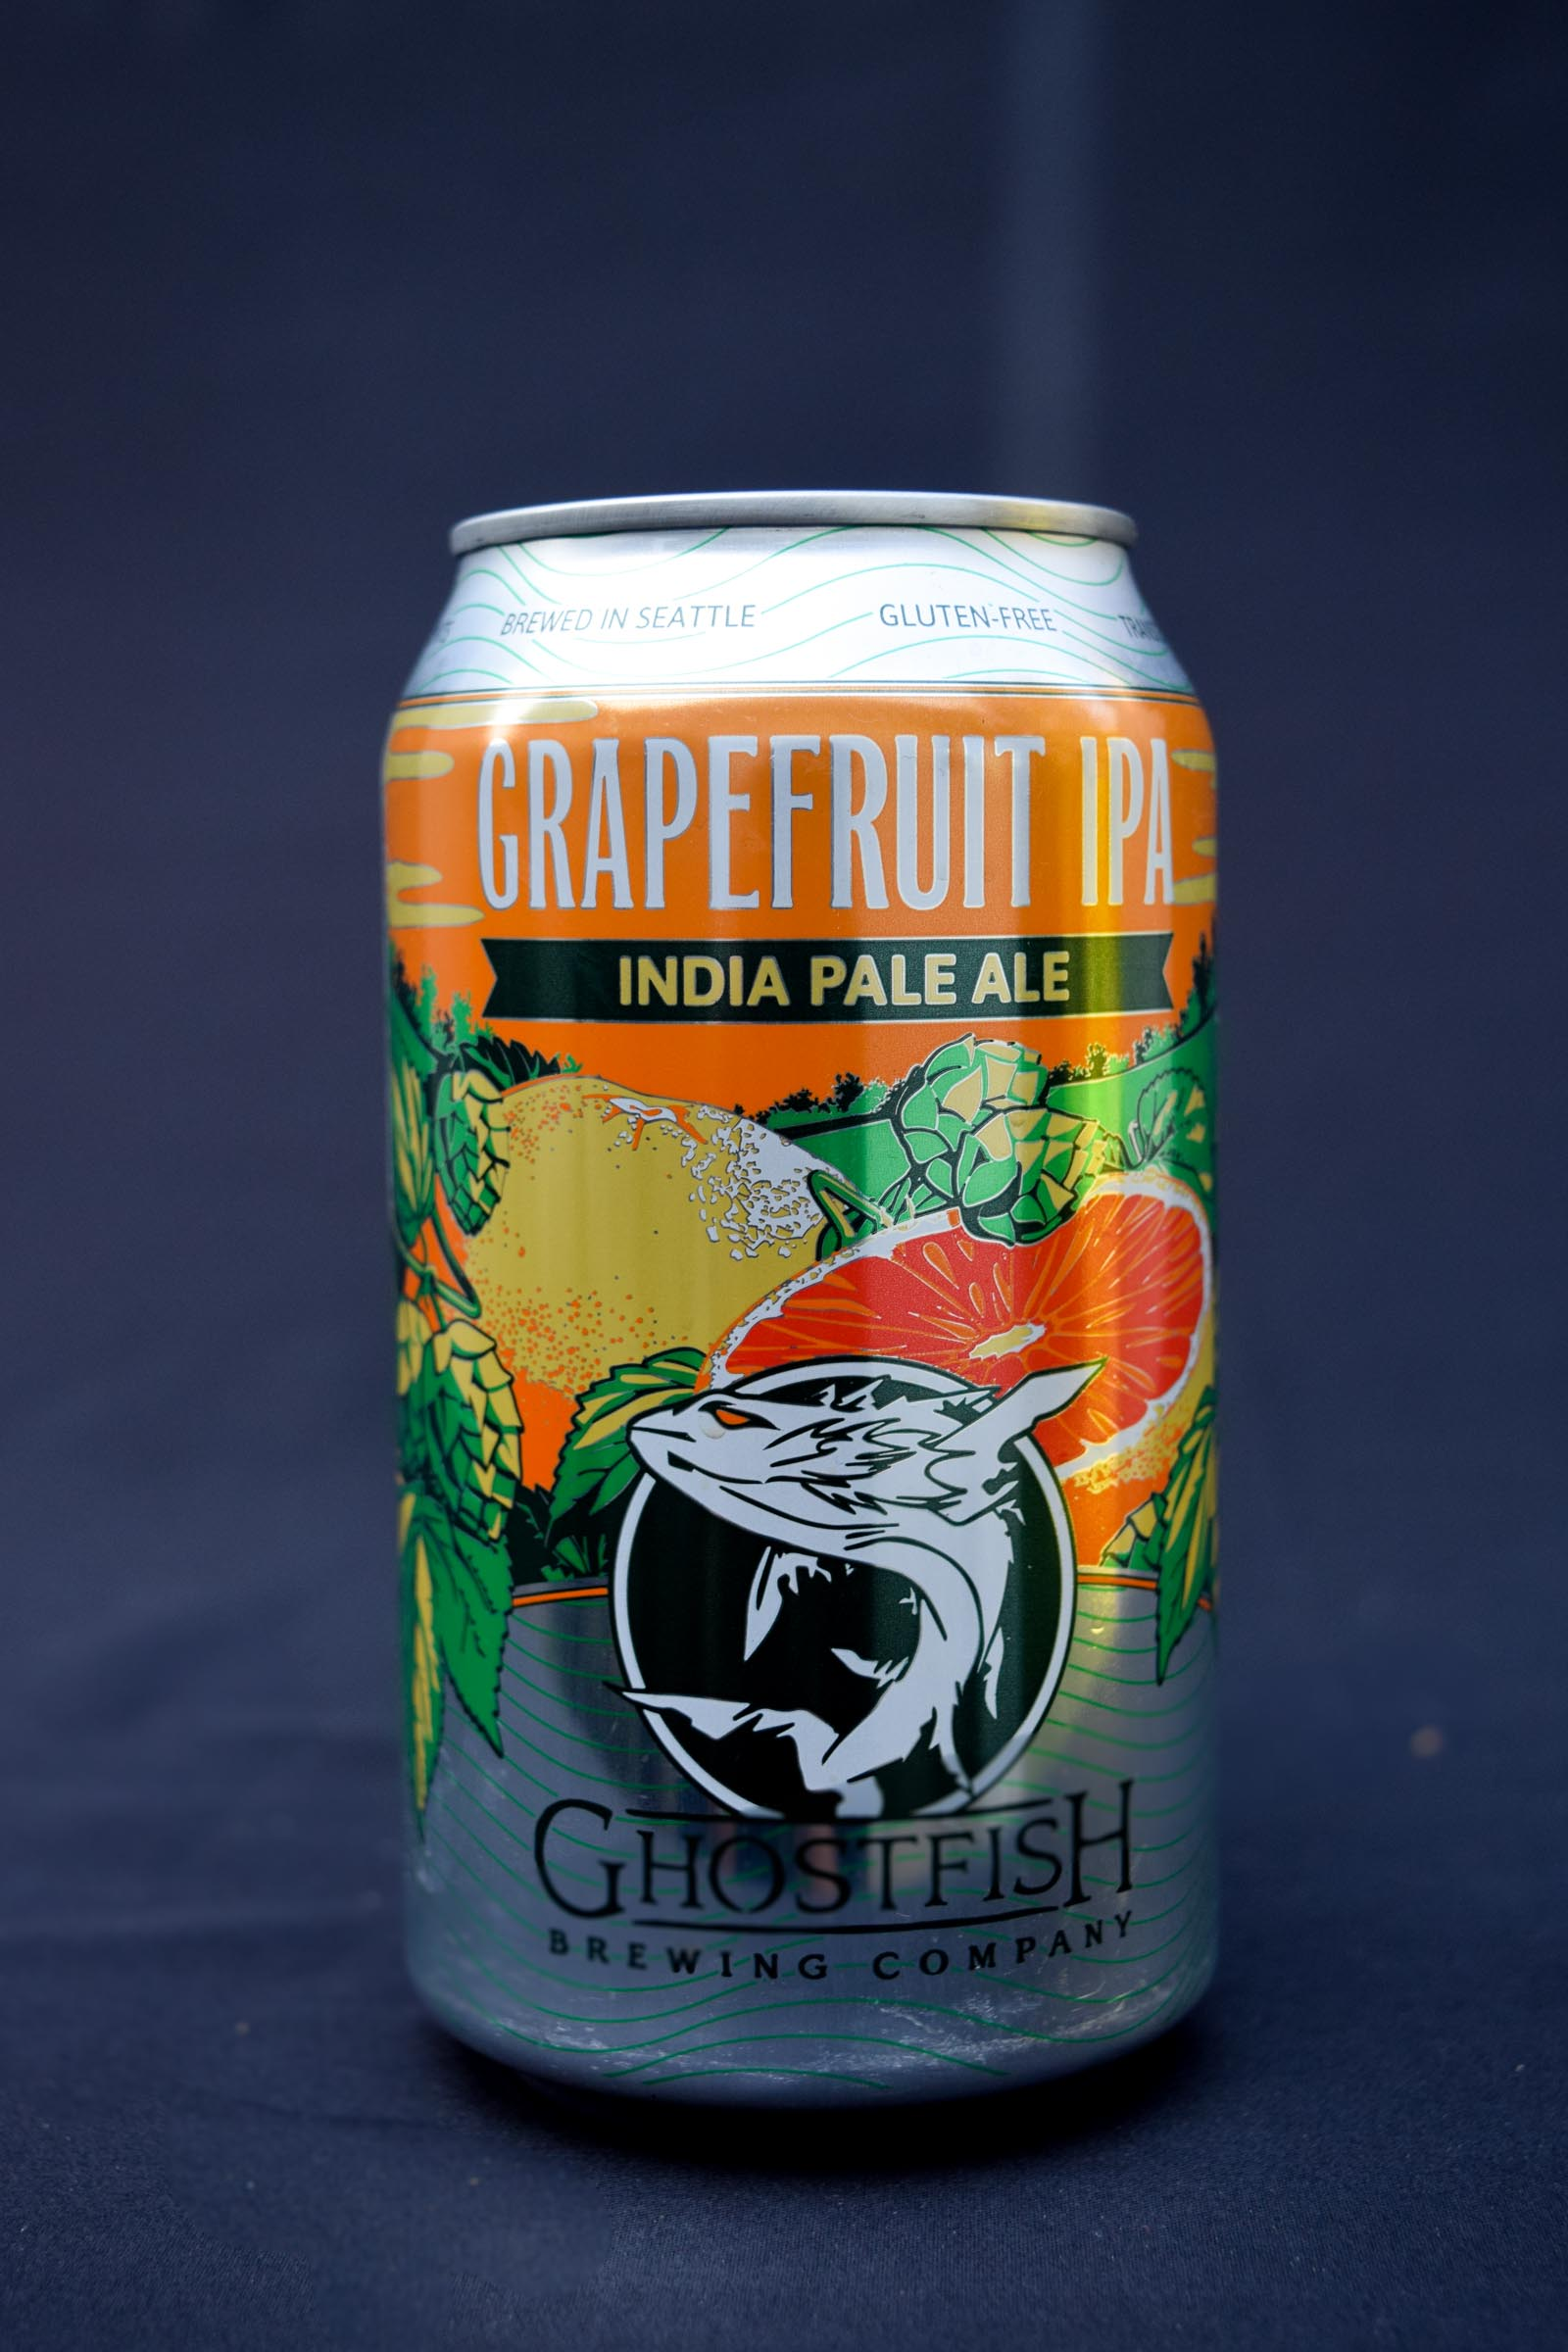 Buy Ghostfish Gluten-free beer online